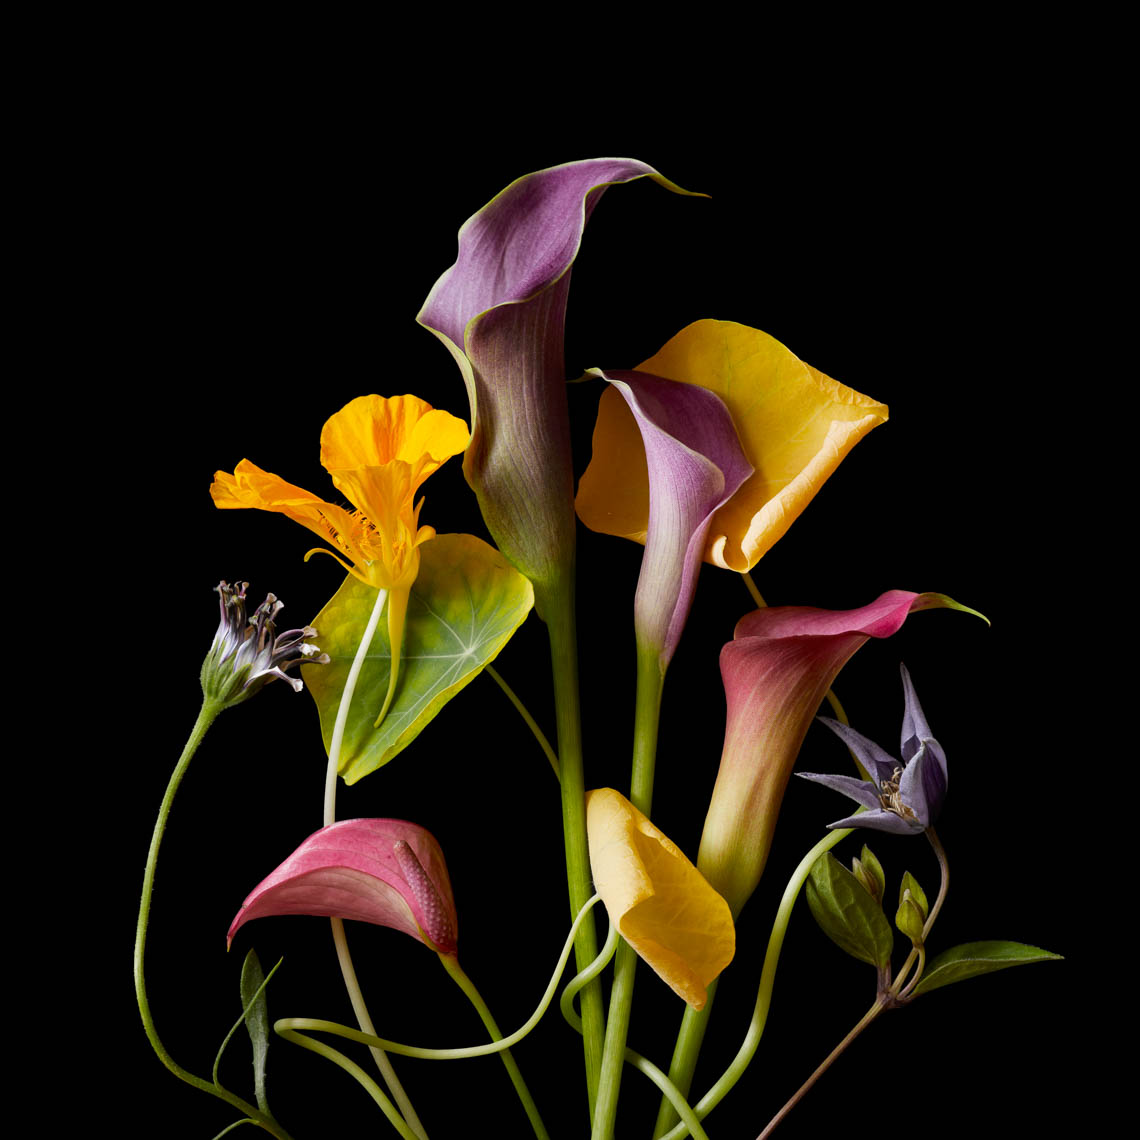 Flower Composition | Botanical Still Life